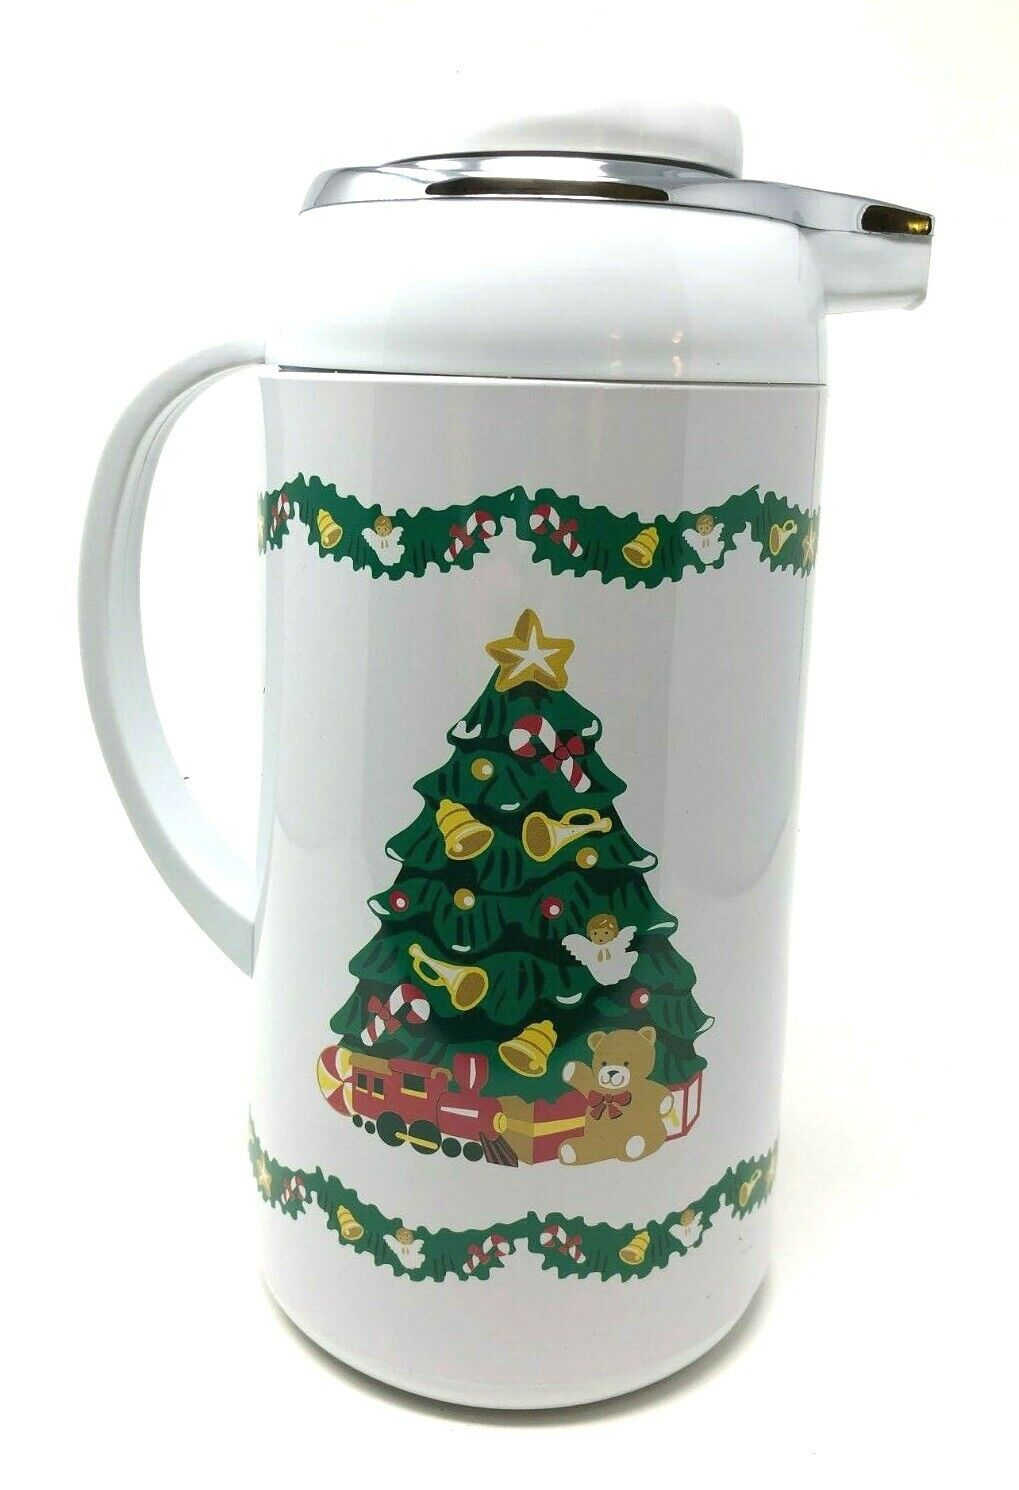 Plastic Christmas Tree.Hometrends Christmas Tree Holiday Coffee Plastic Hot Cold Thermal Carafe Pot